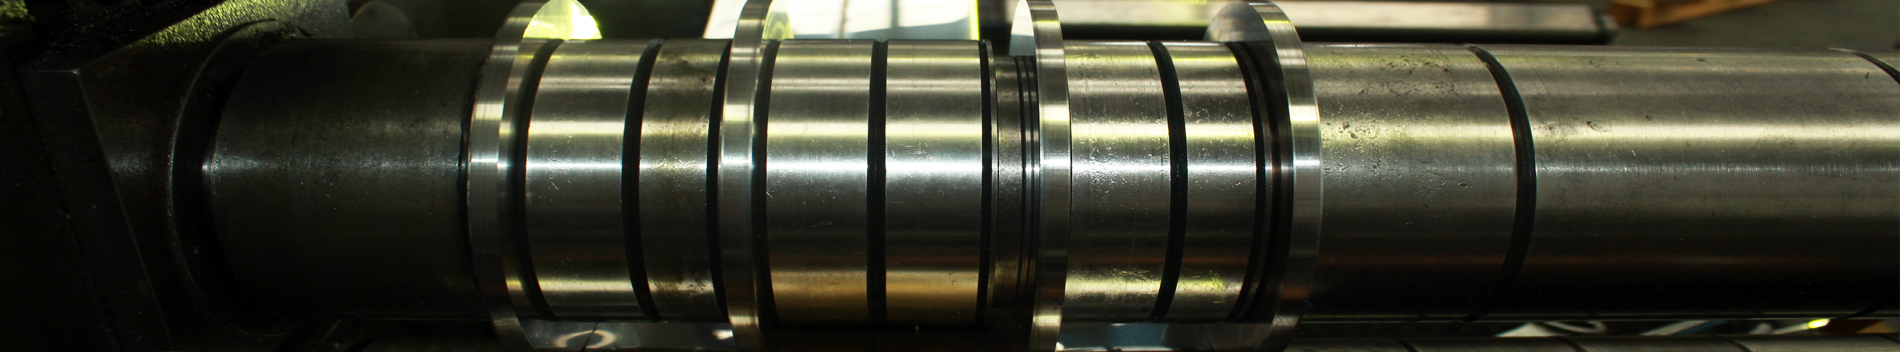 Nickel Alloys, stainless steel & Titanium Pressure Tubes